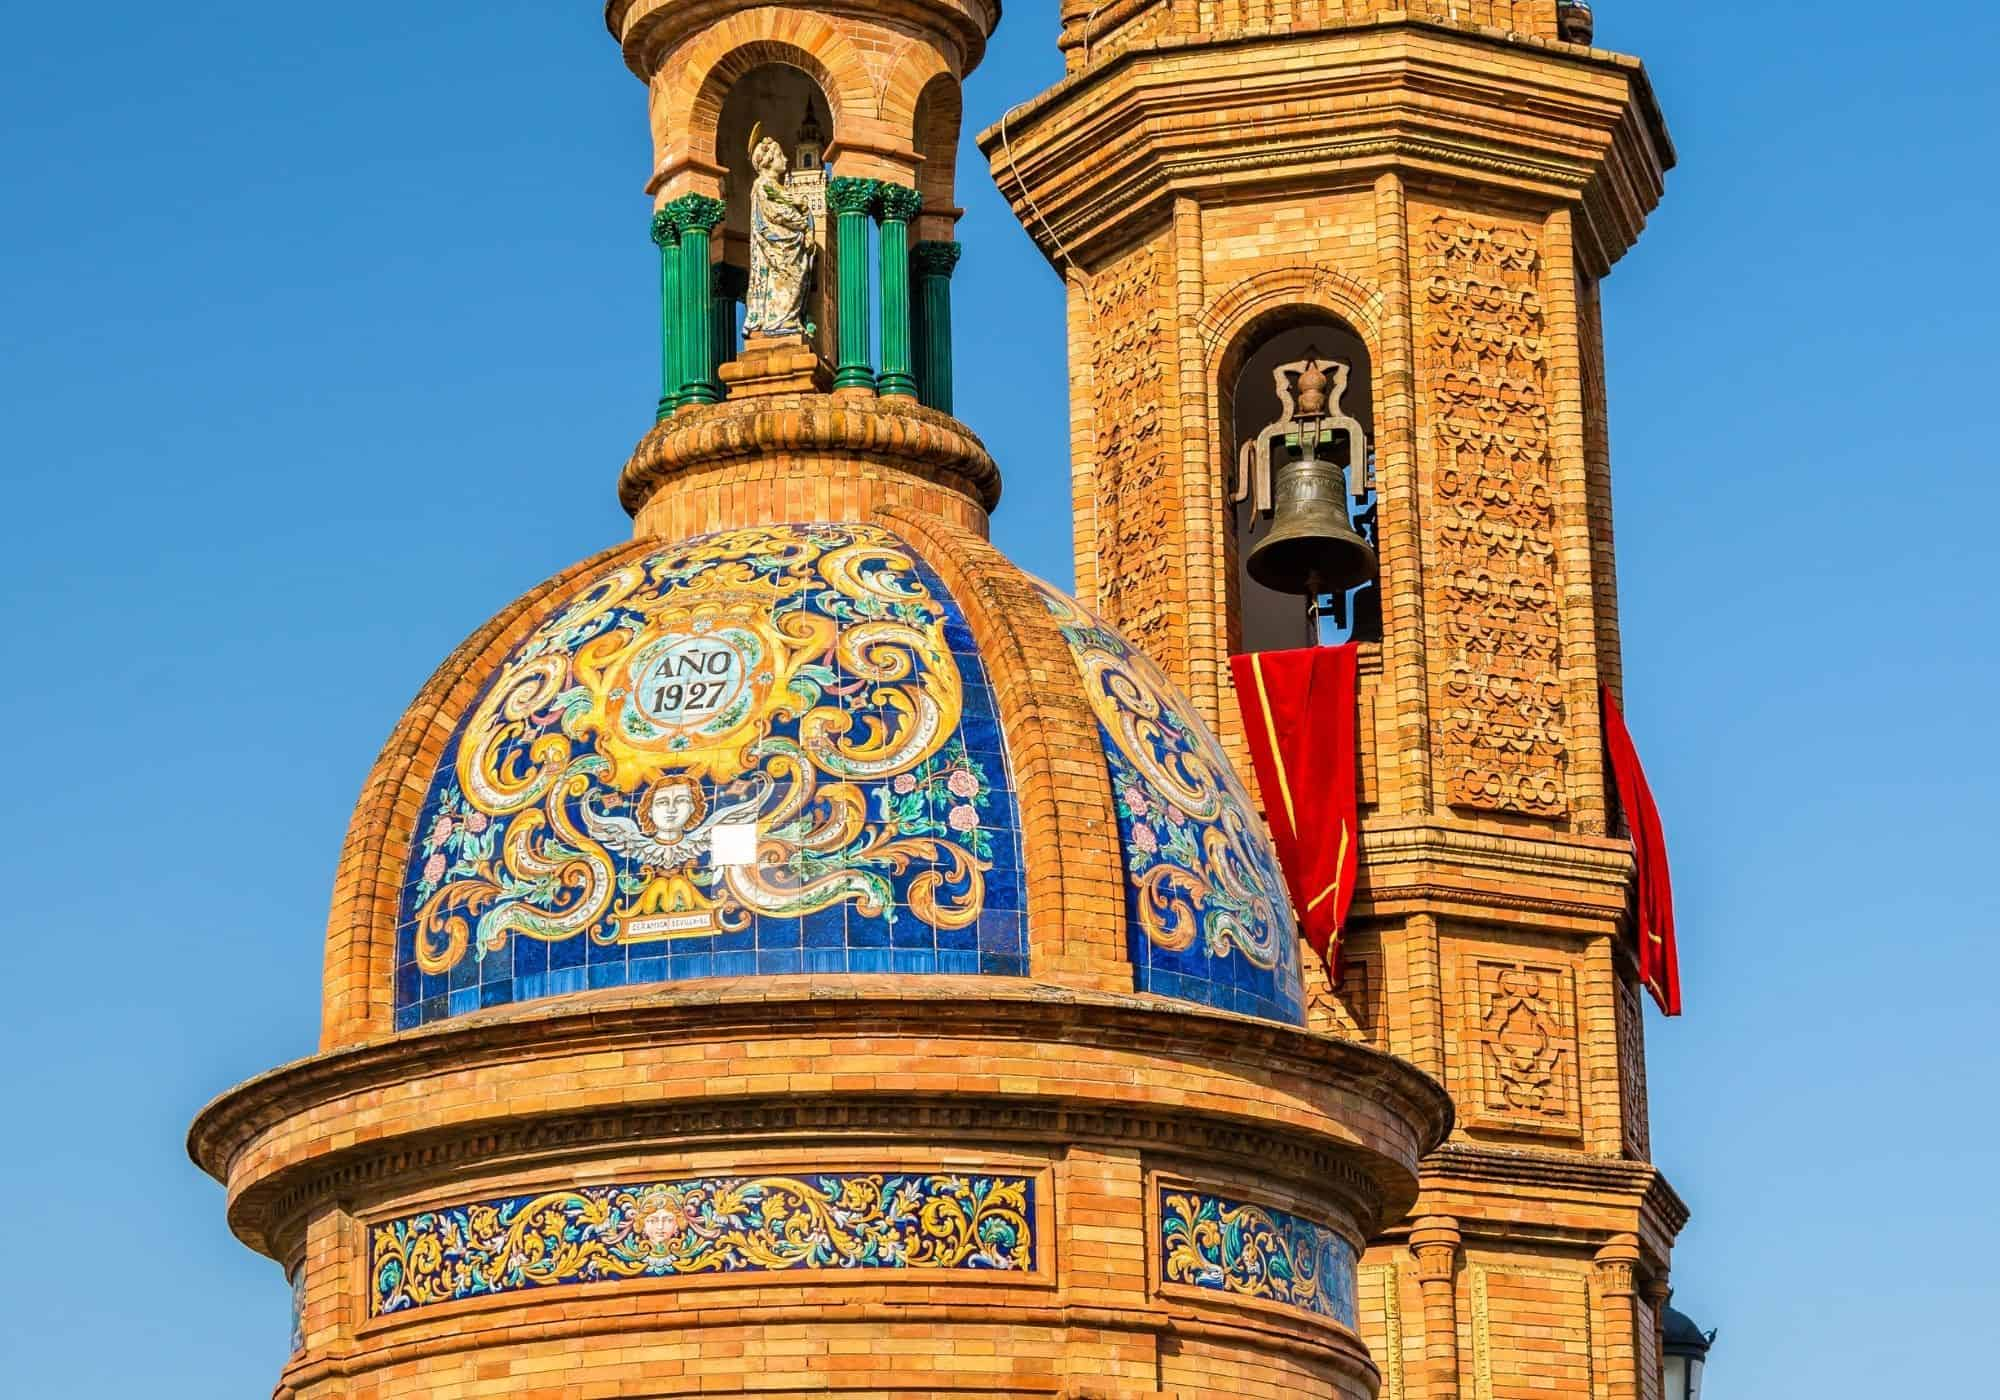 Spain - Seville - Triana - Capilla Carmen - Roof Dome View